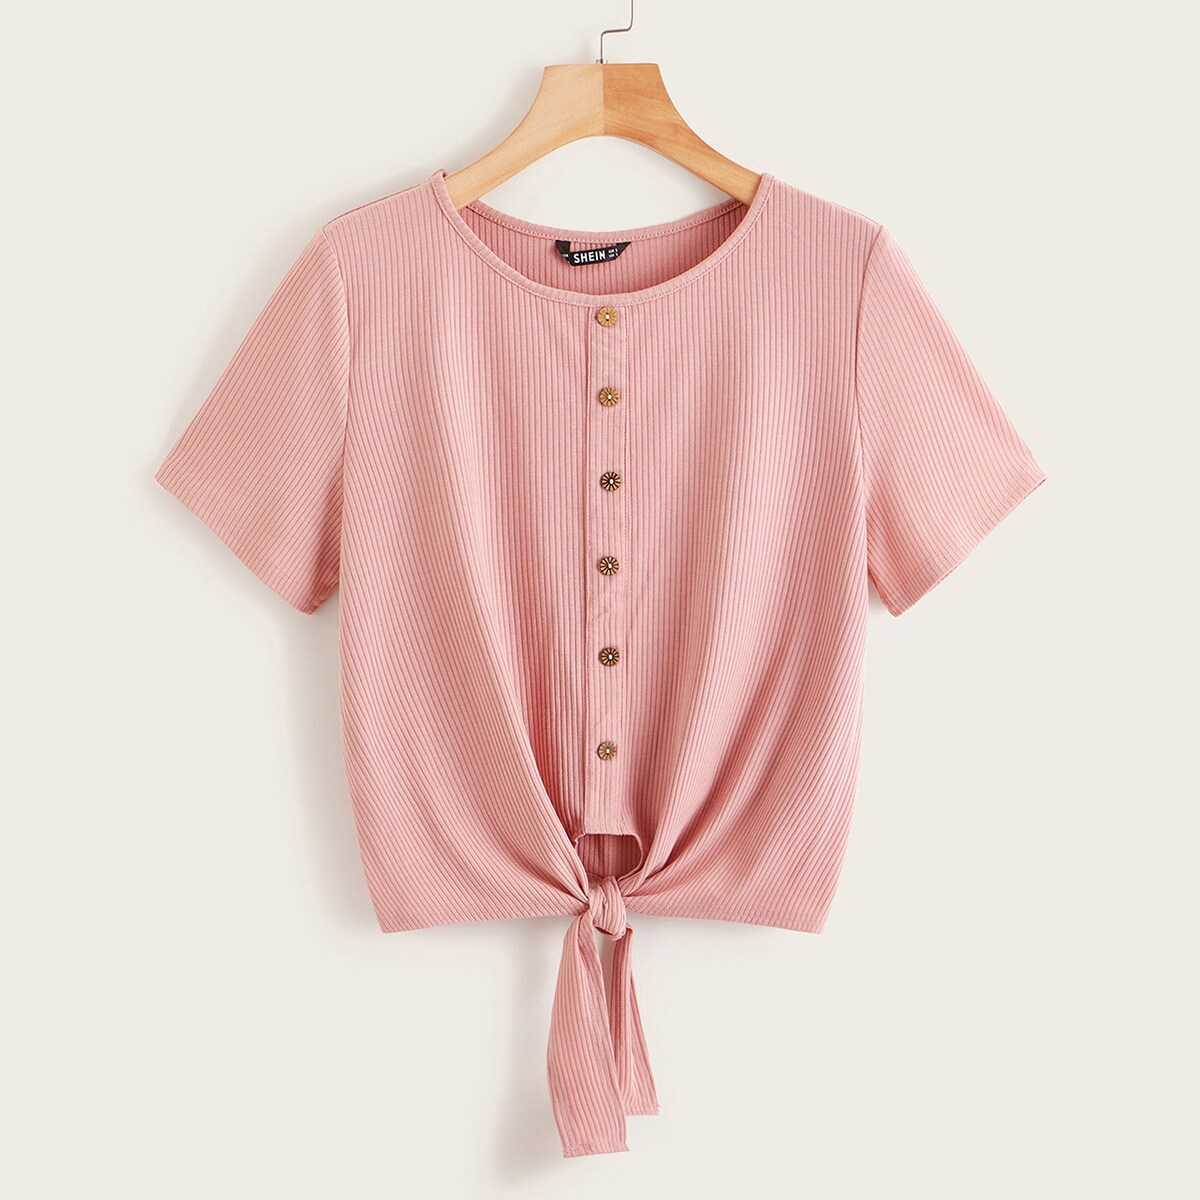 Button Front Knot Hem Ribbed Tee in Pink by ROMWE on GOOFASH